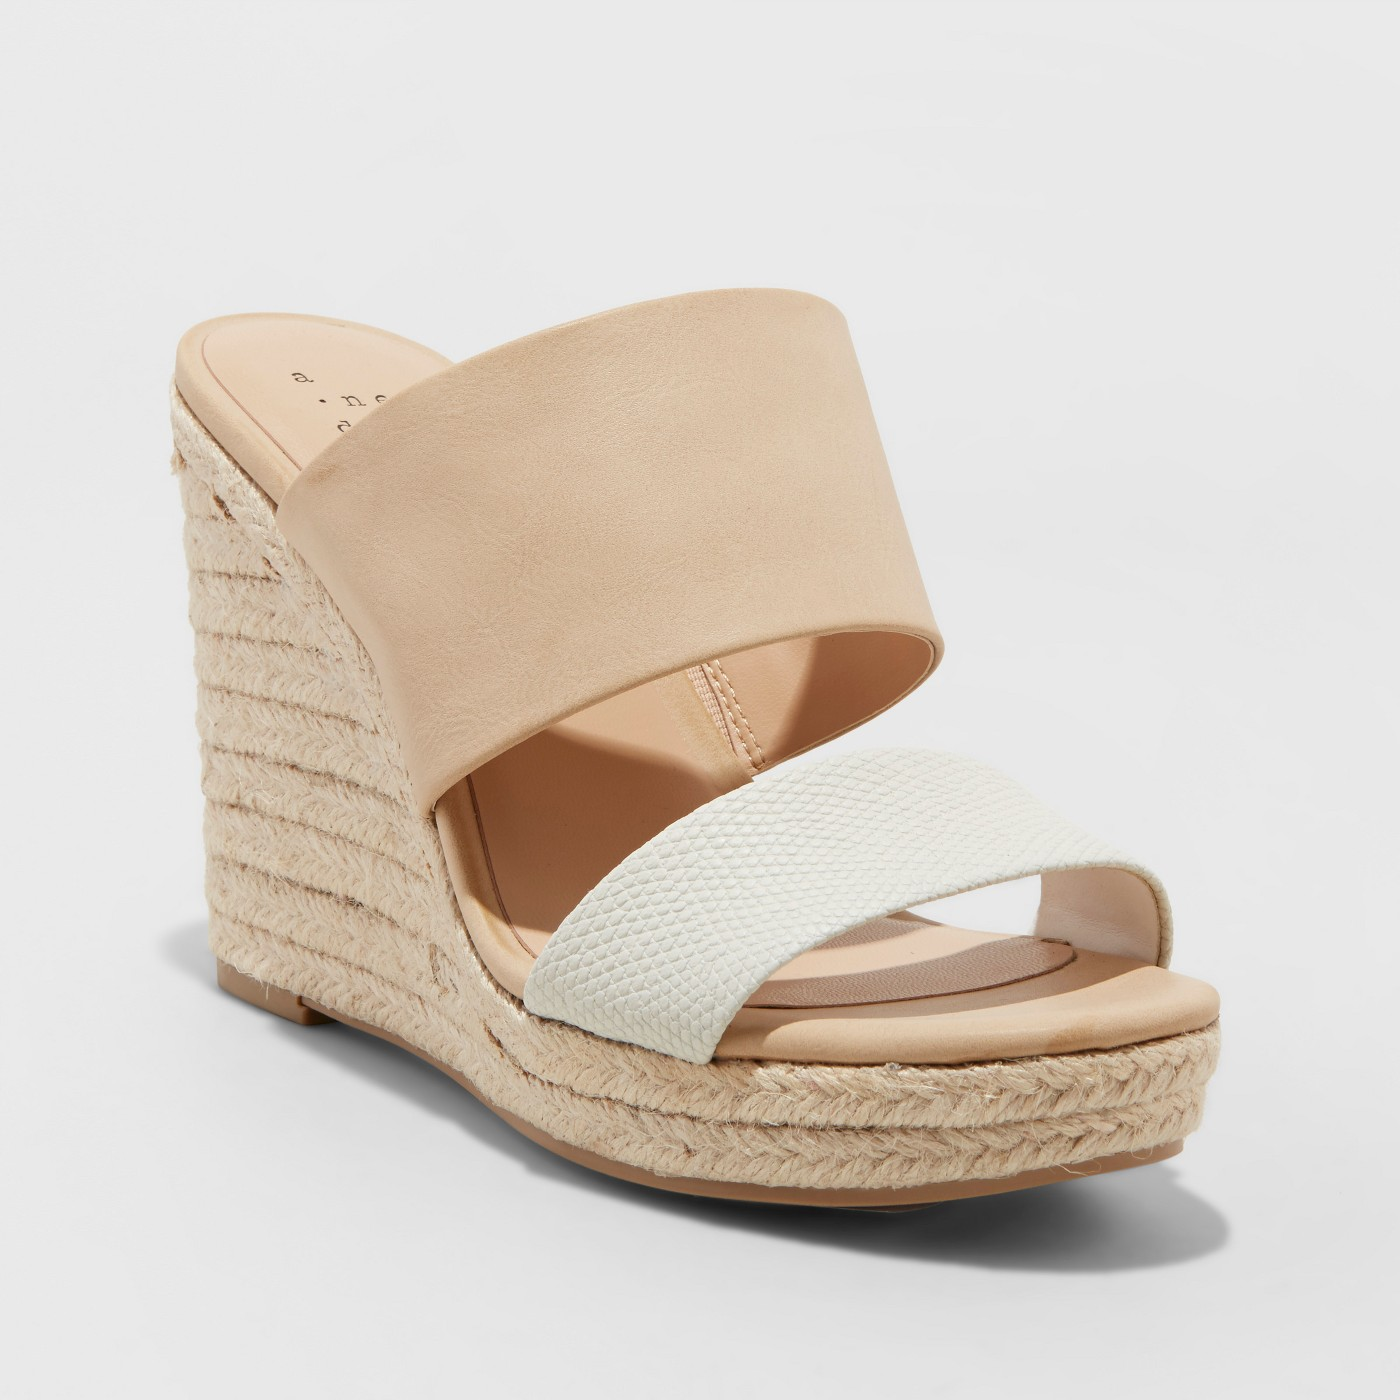 Women's Adelina Adult Espadrilles Slide Sandals - A New Day™ - image 1 of 3